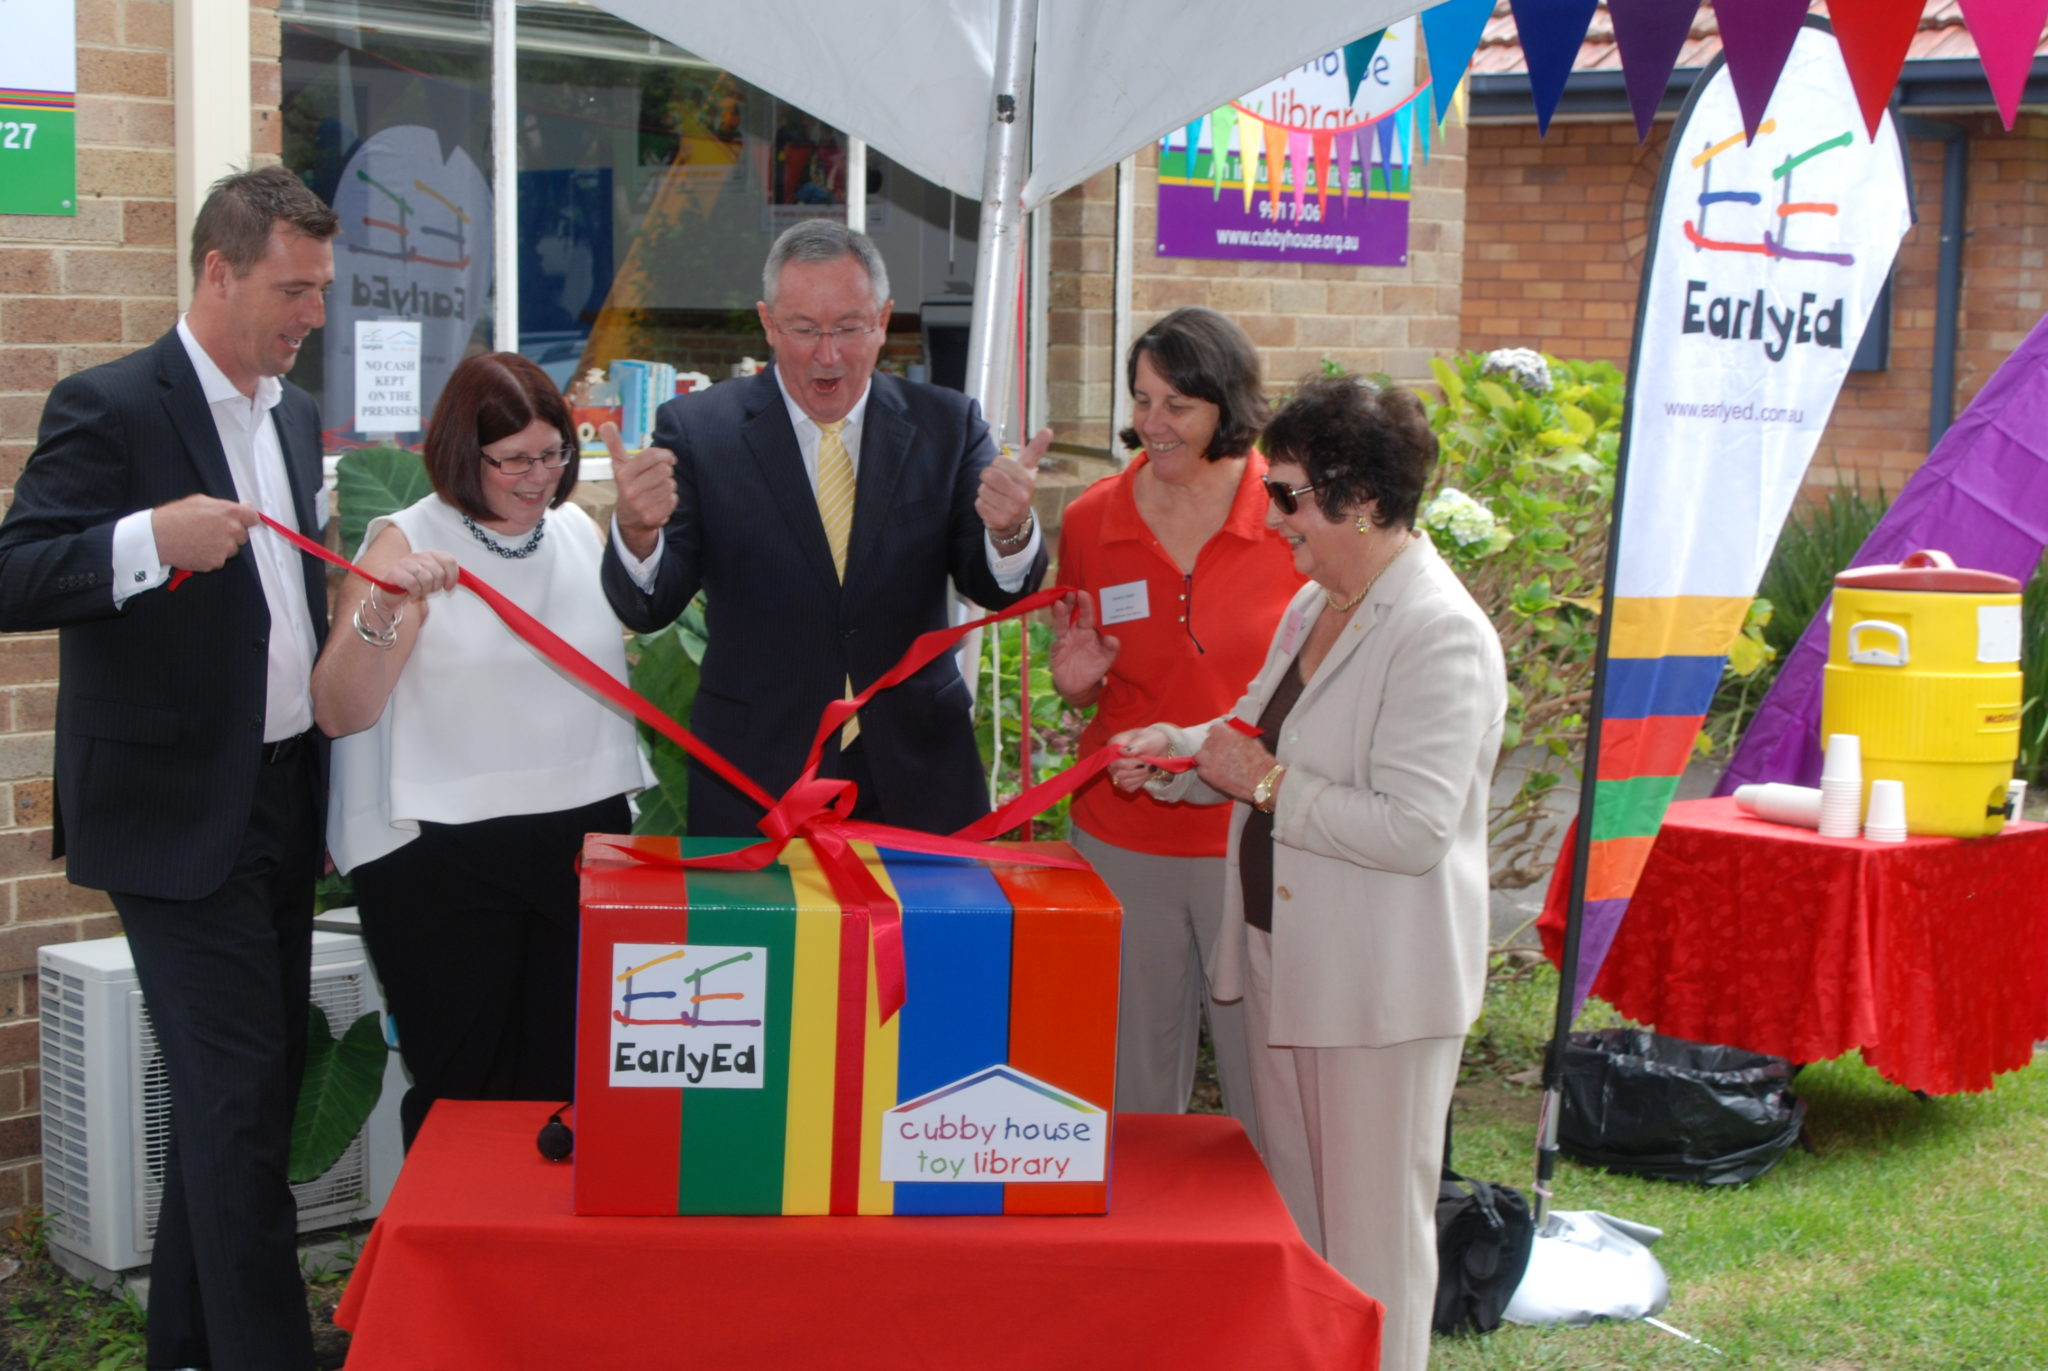 Relaunching of the EarlyEd Cubby House Toy Library